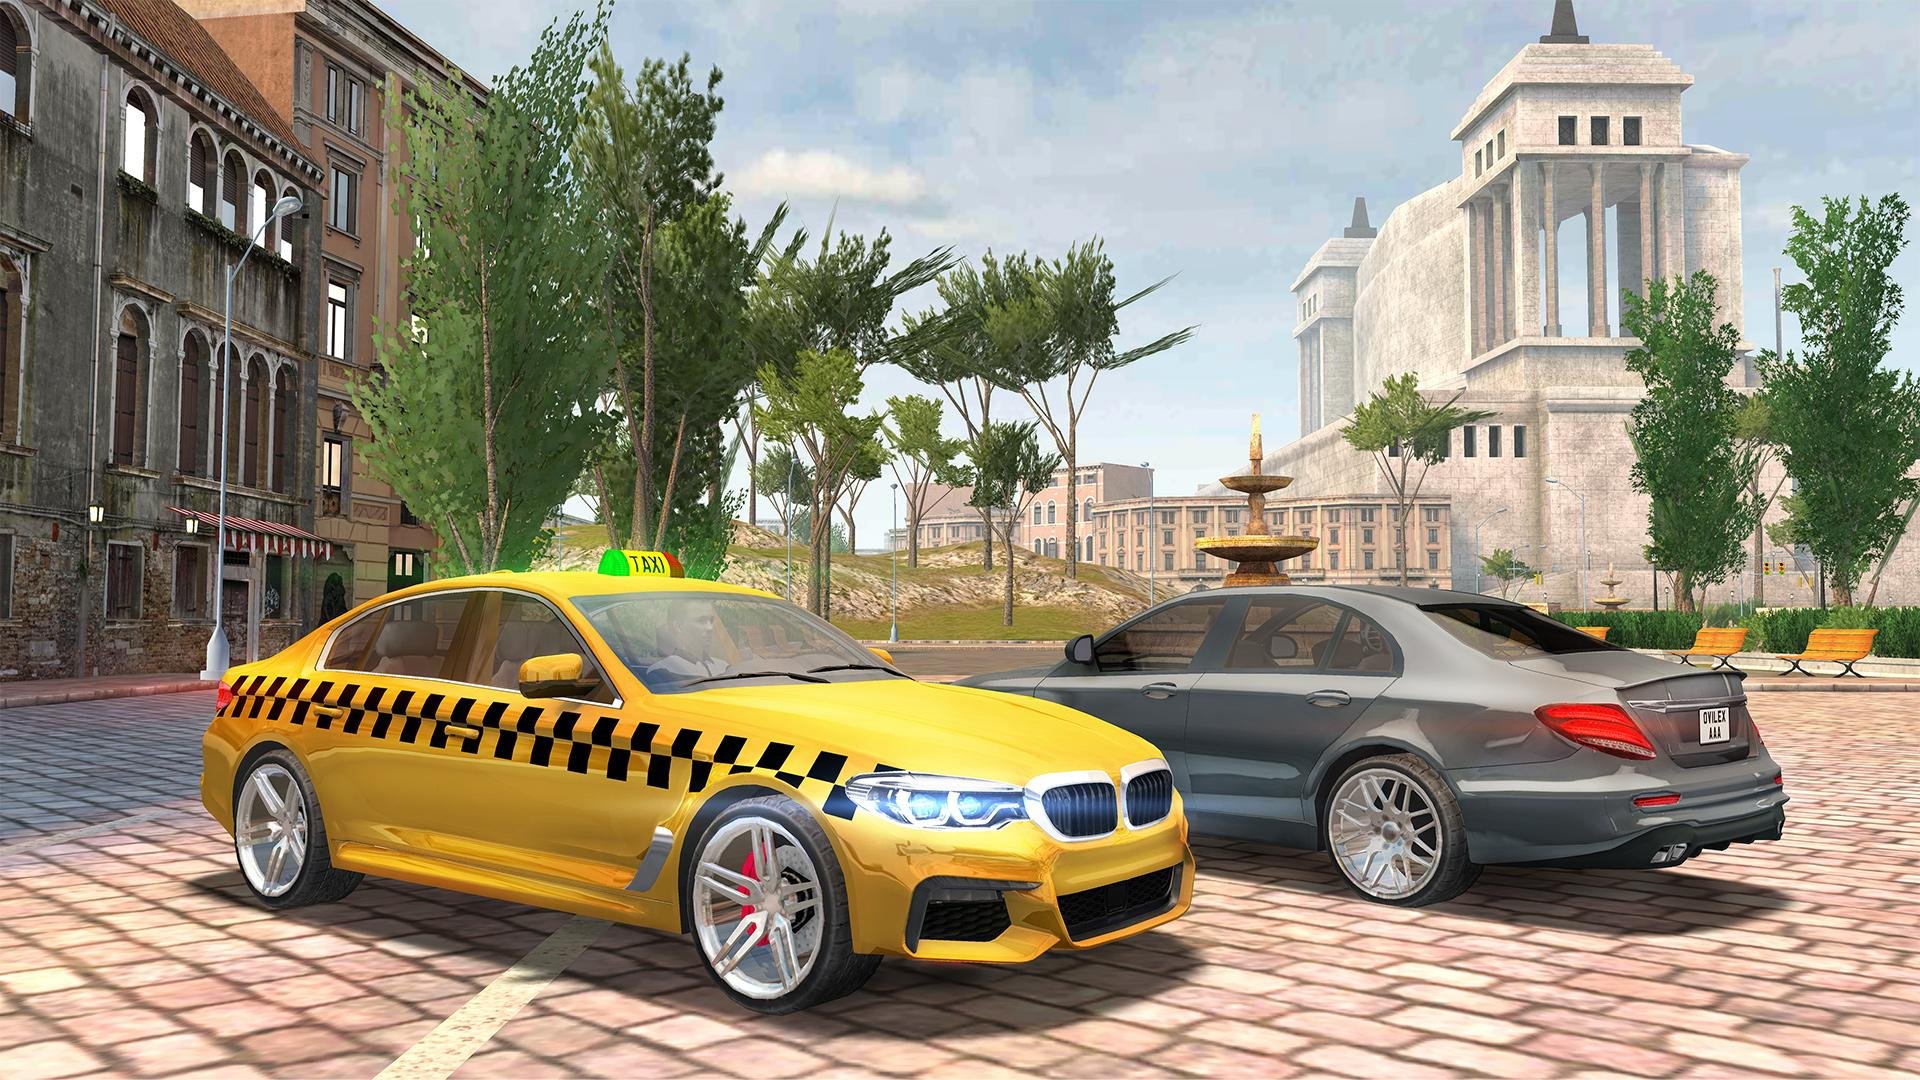 Taxi Sim 2020 screenshot 1